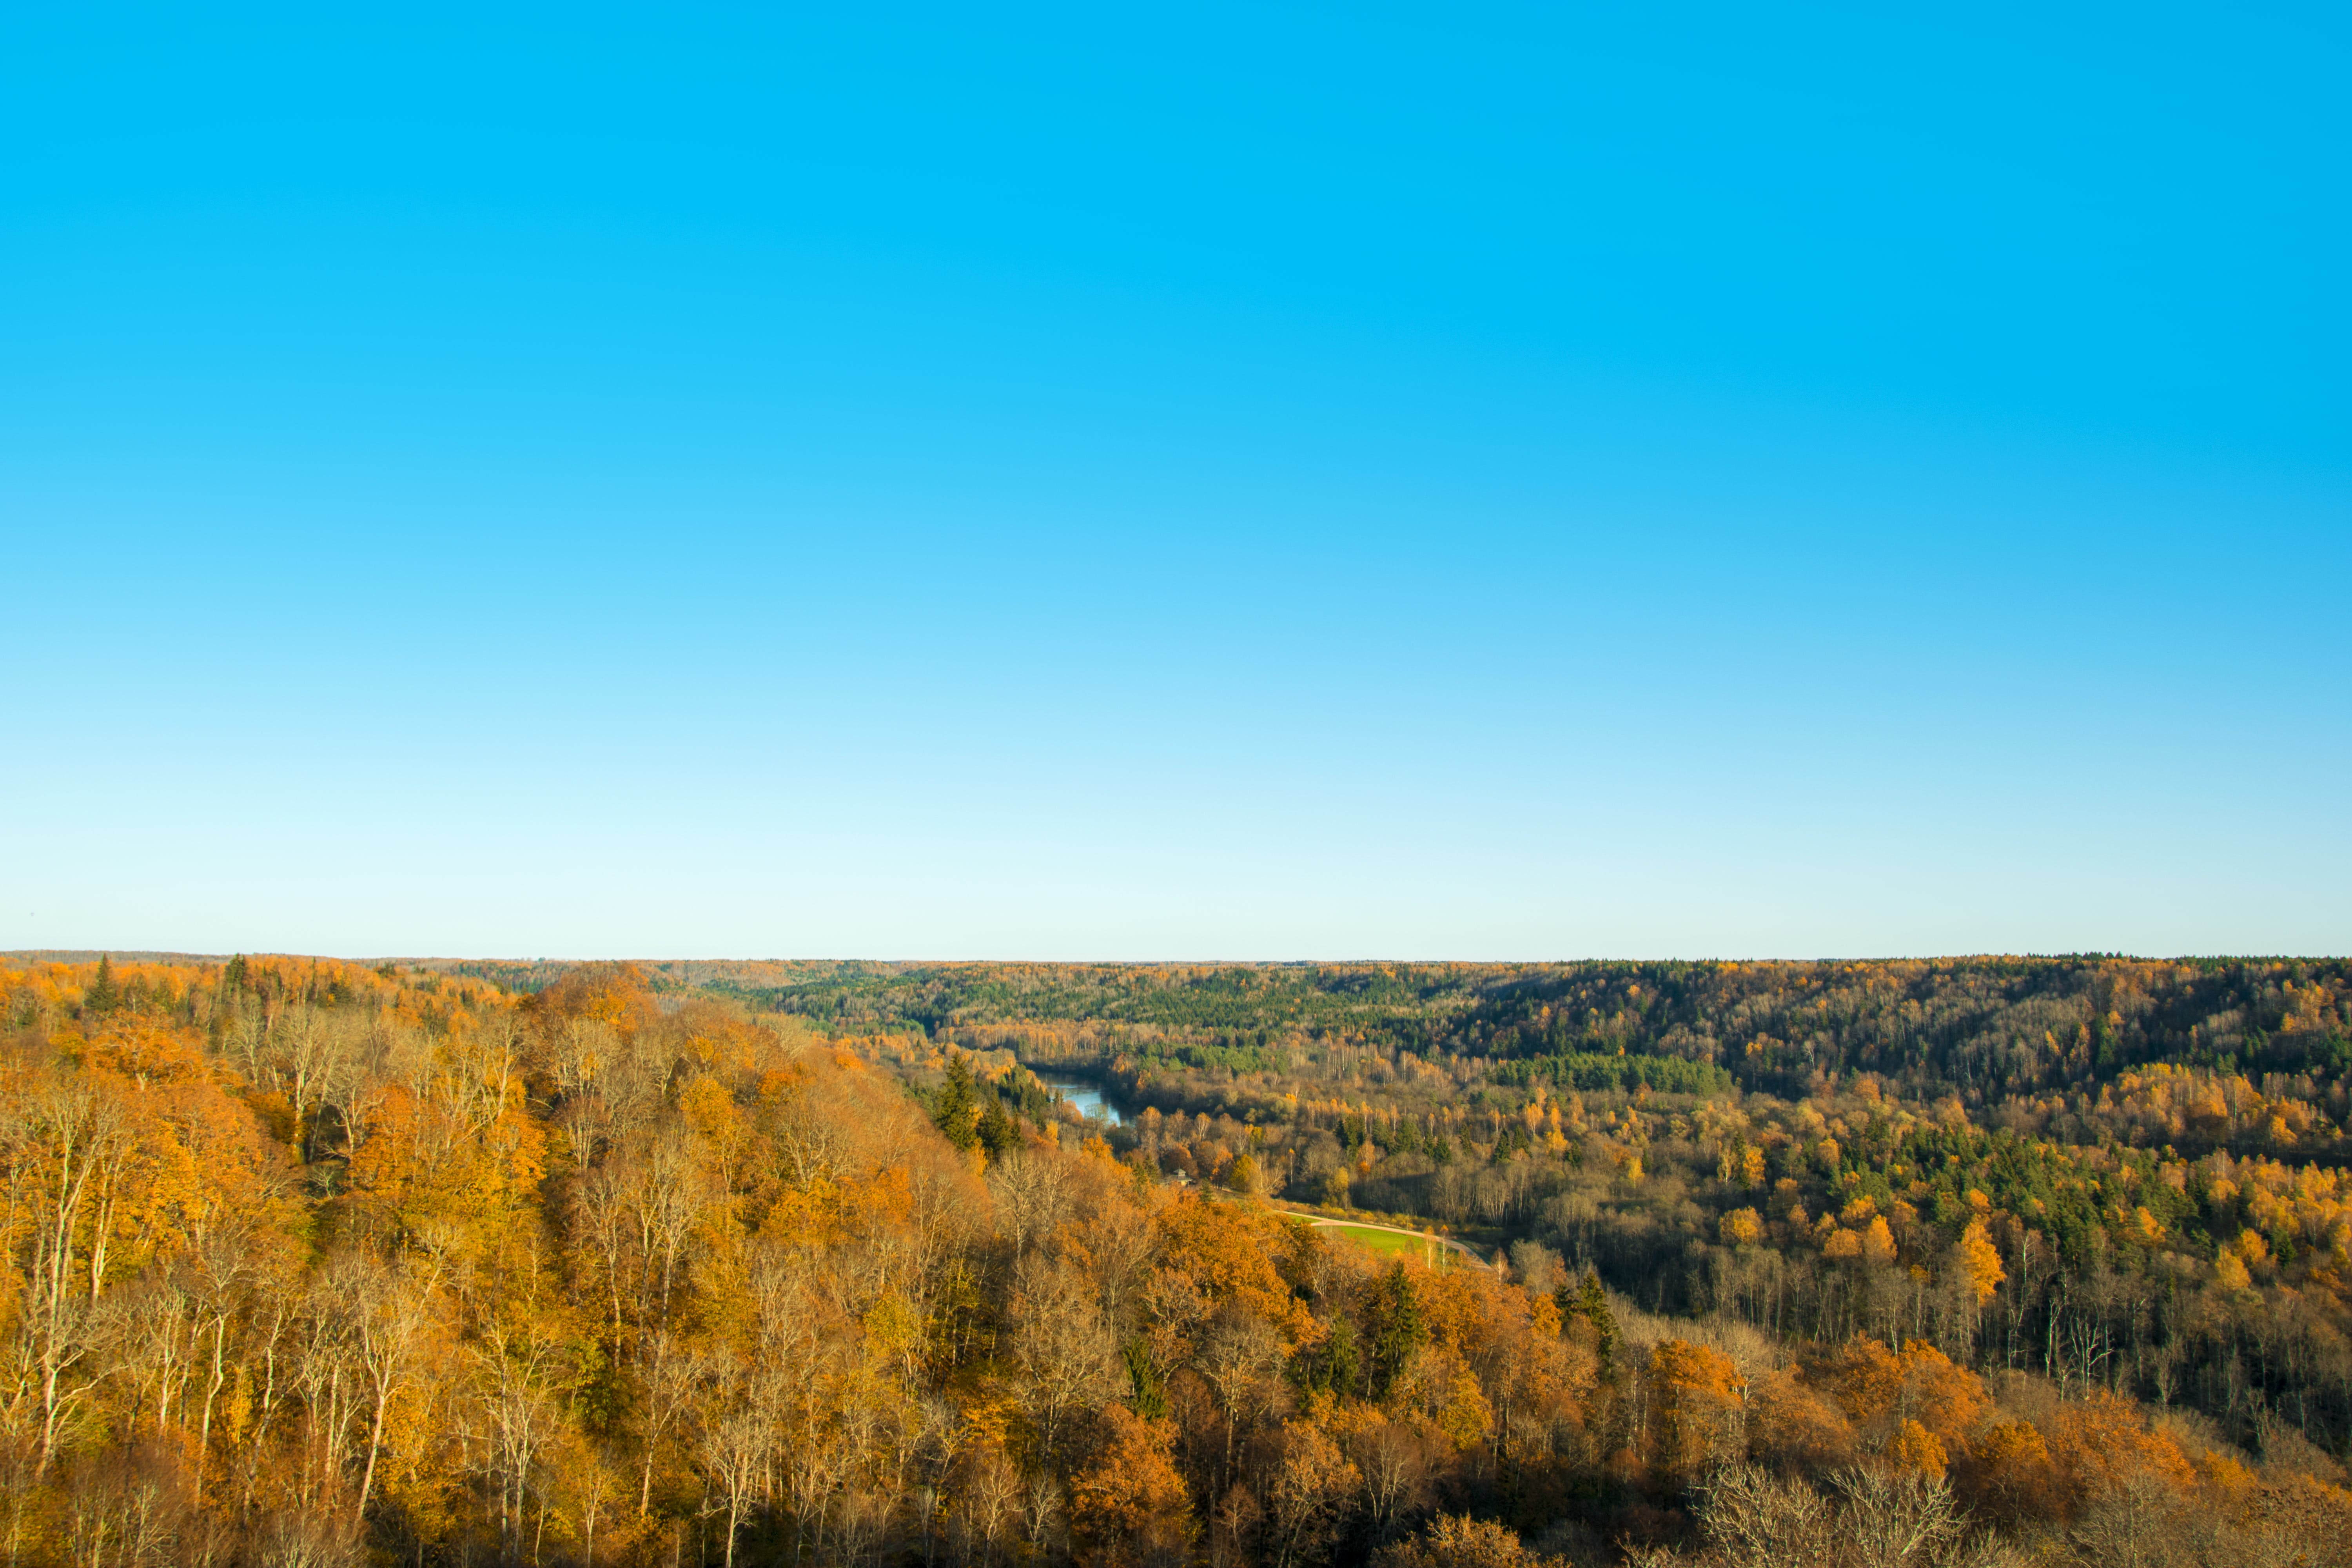 Landscape Photography of Brown Forest Under Blue Clear Sky